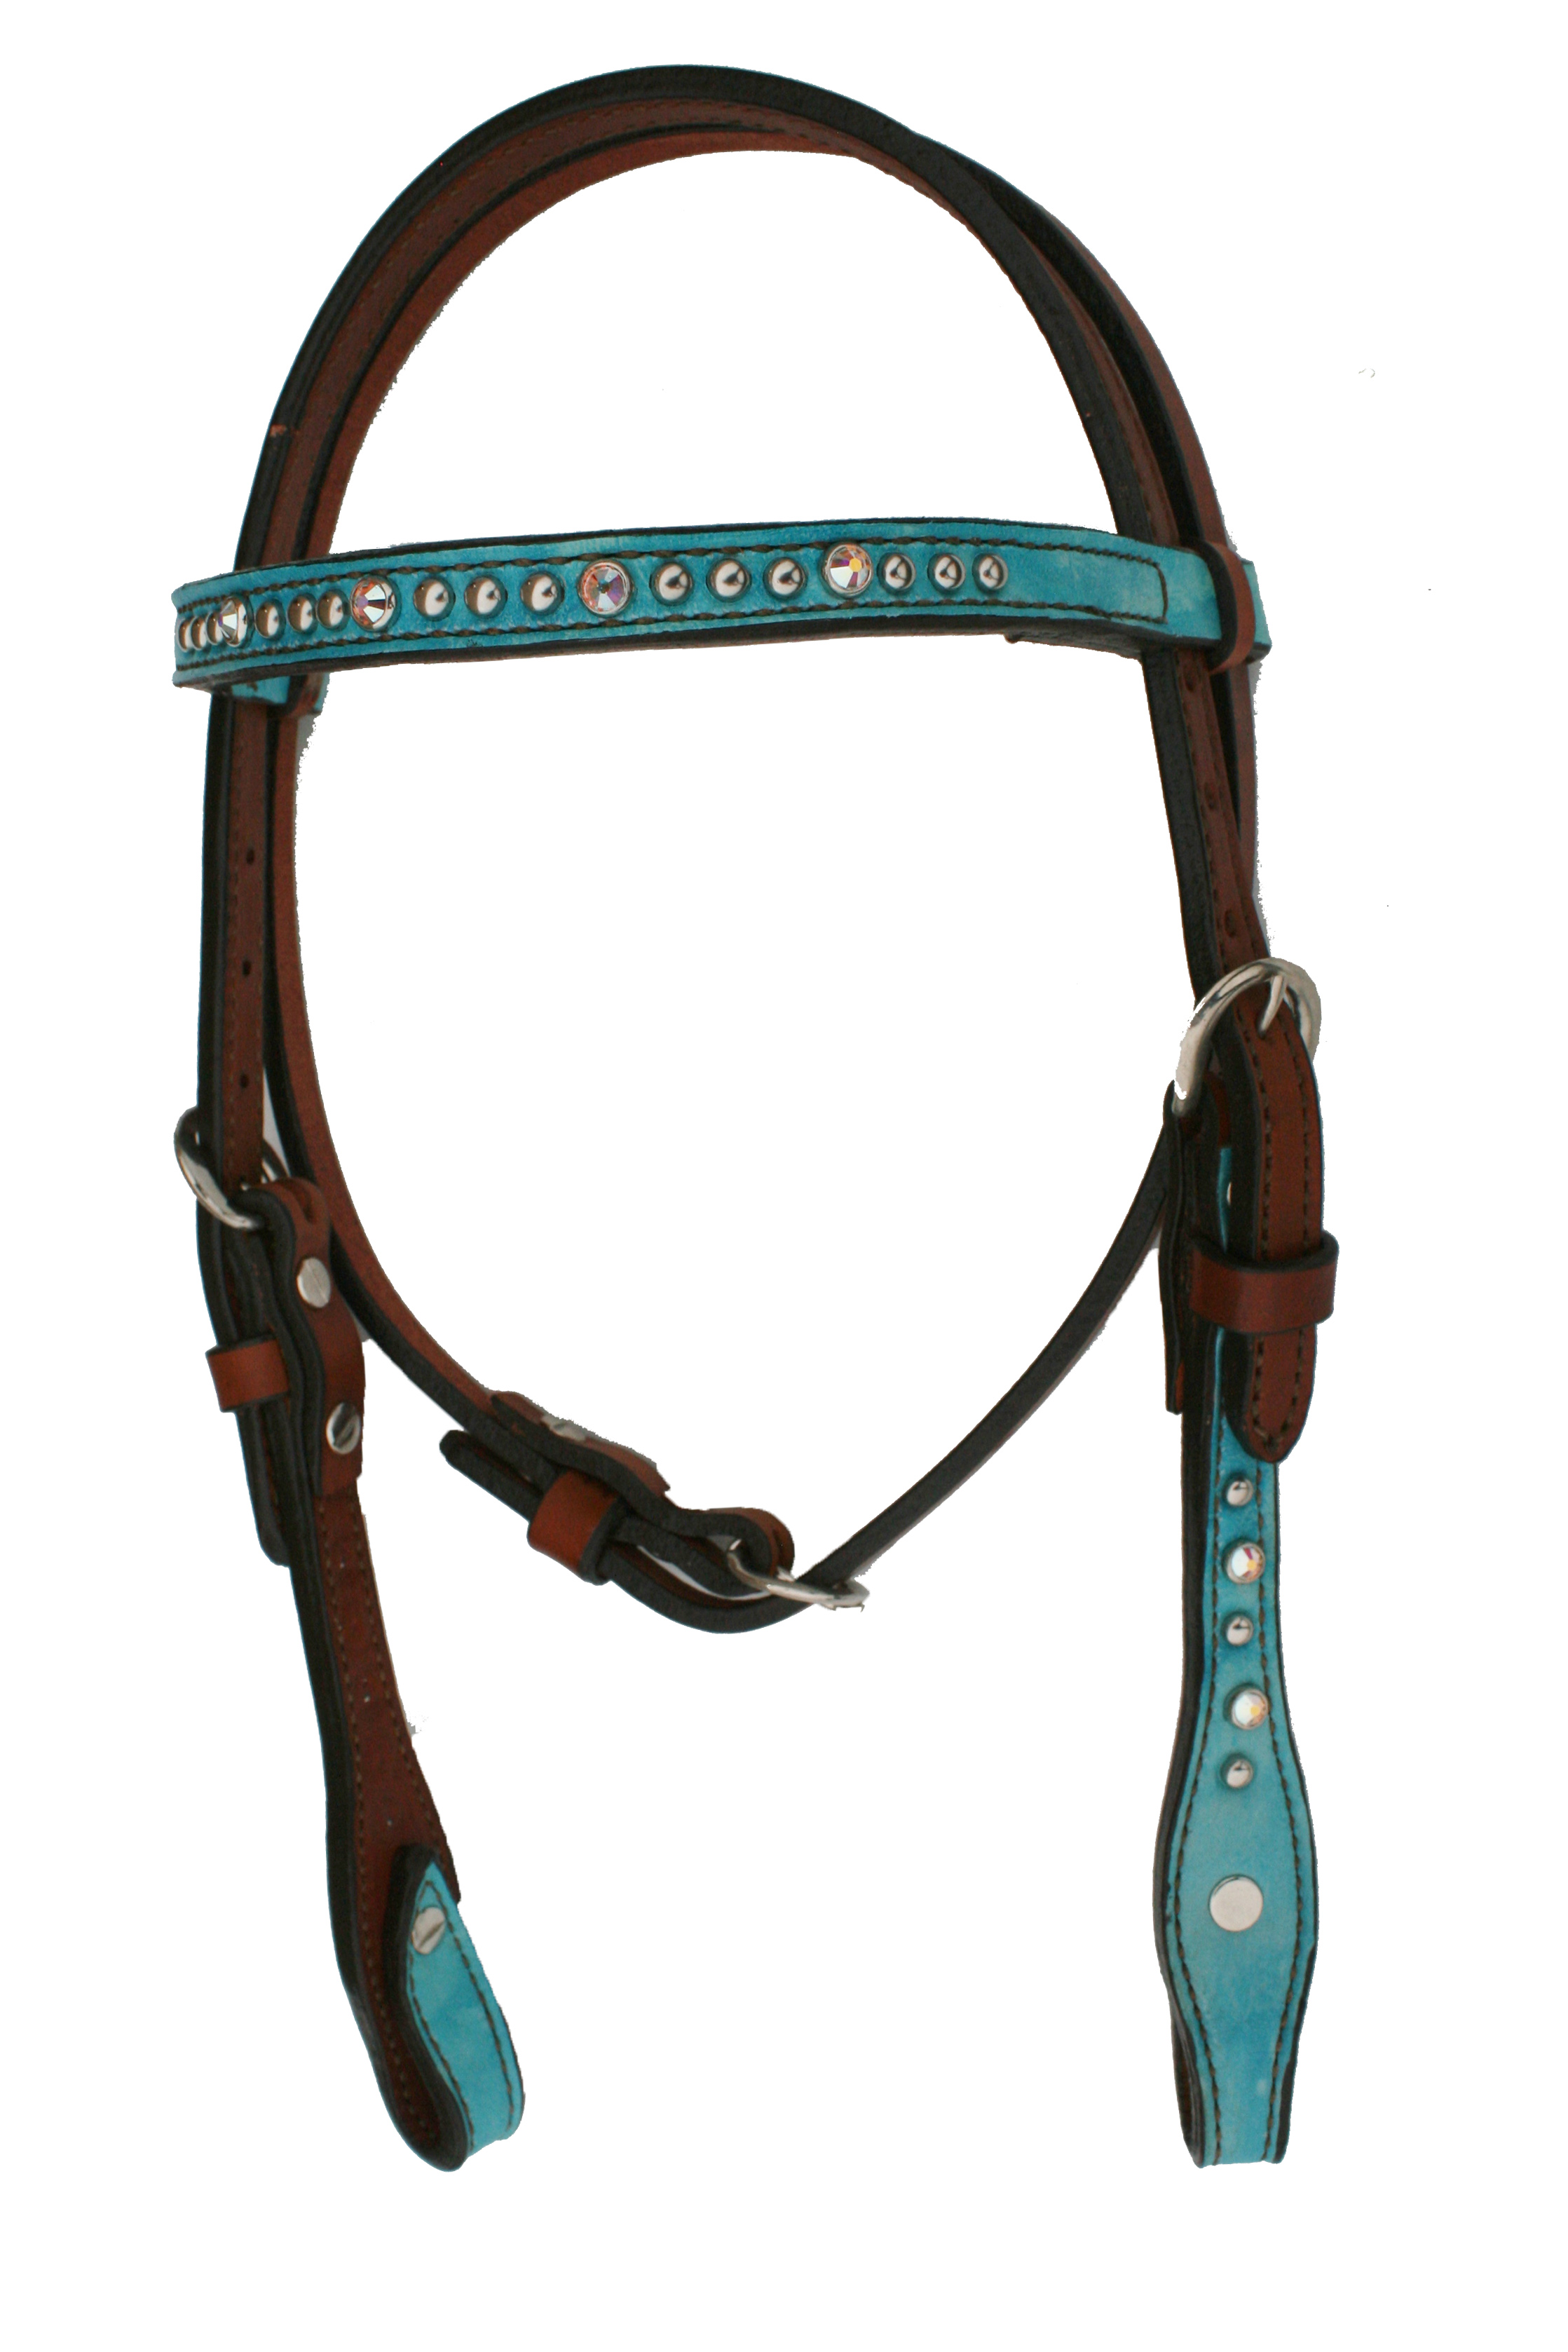 2715-JTM PONY SIZE HEADSTALL w TURQ MARBLE OVERLAY